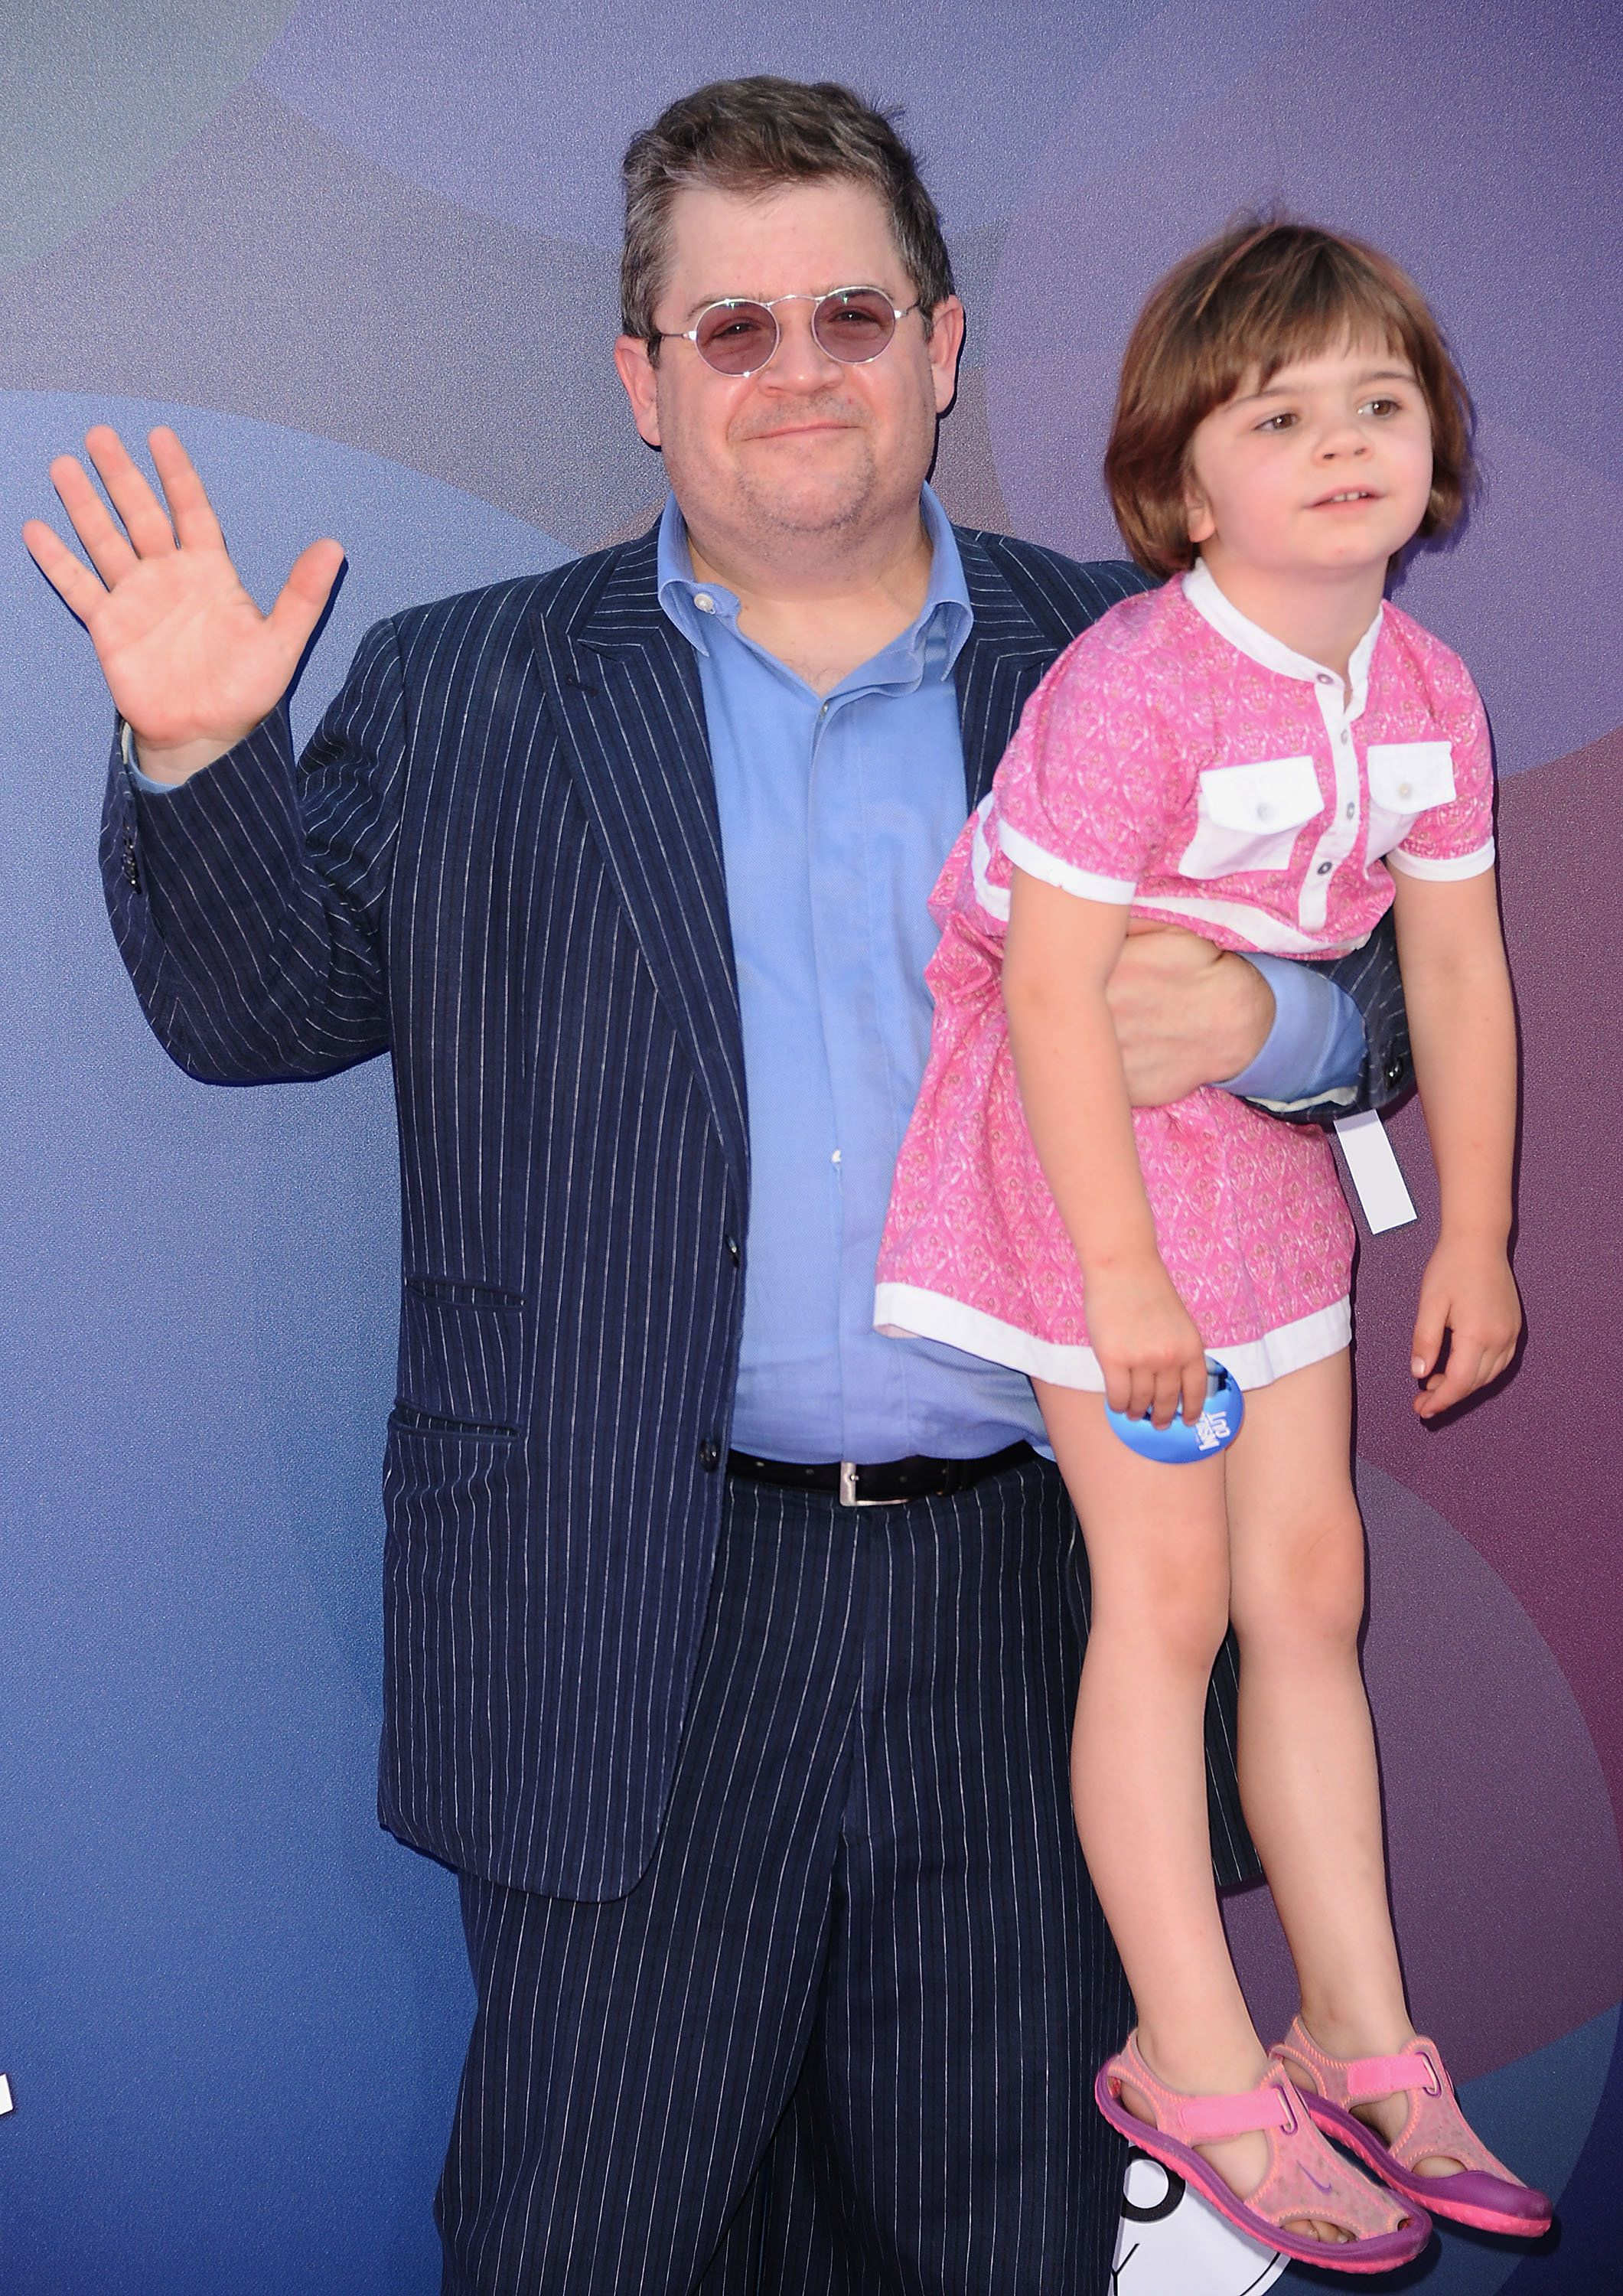 """Patton Oswalt and daughter Alice Oswalt attend the premiere of """"Inside Out"""" in 2015."""